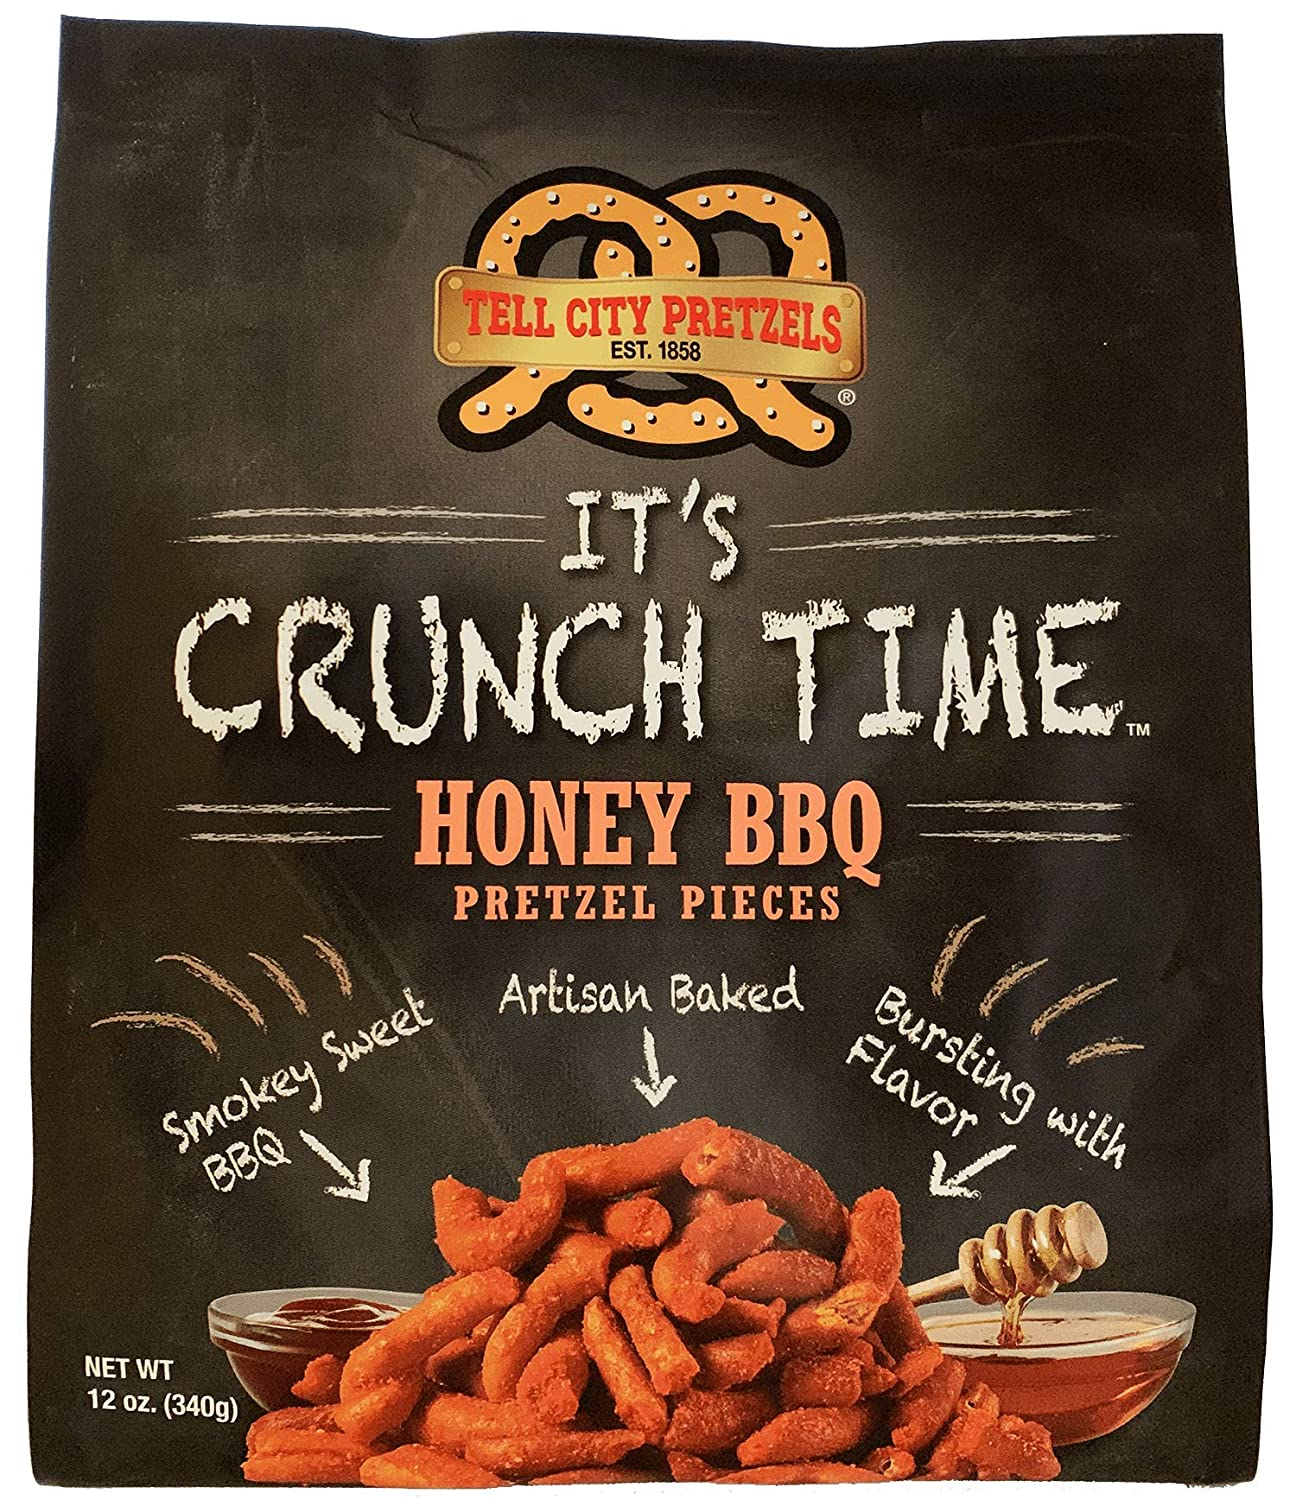 Tell City Honey BBQ Flavored Pretzel Pieces - Homestyle Crunchy Hard Pretzels - Honey BBQ, 12 oz